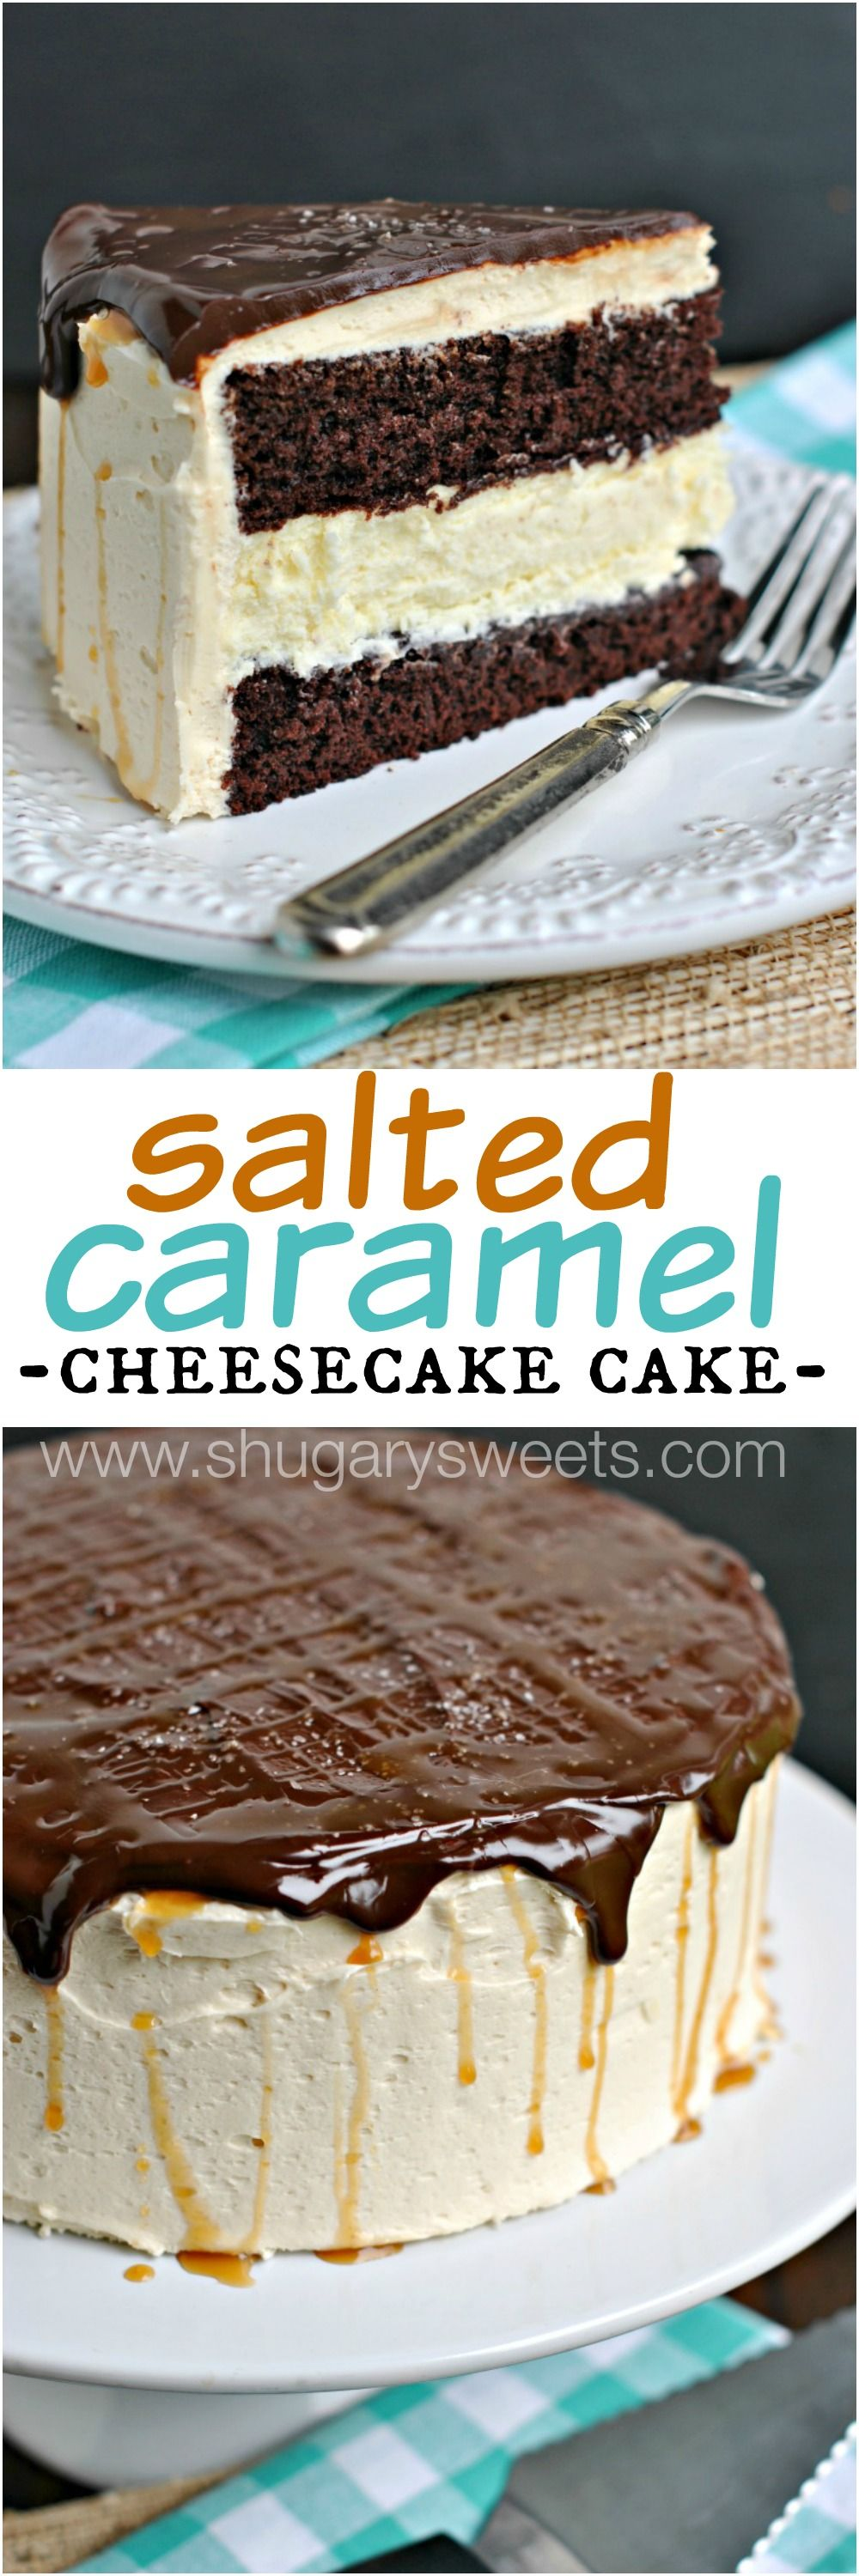 Salted caramel cheesecake cake delicious chocolate